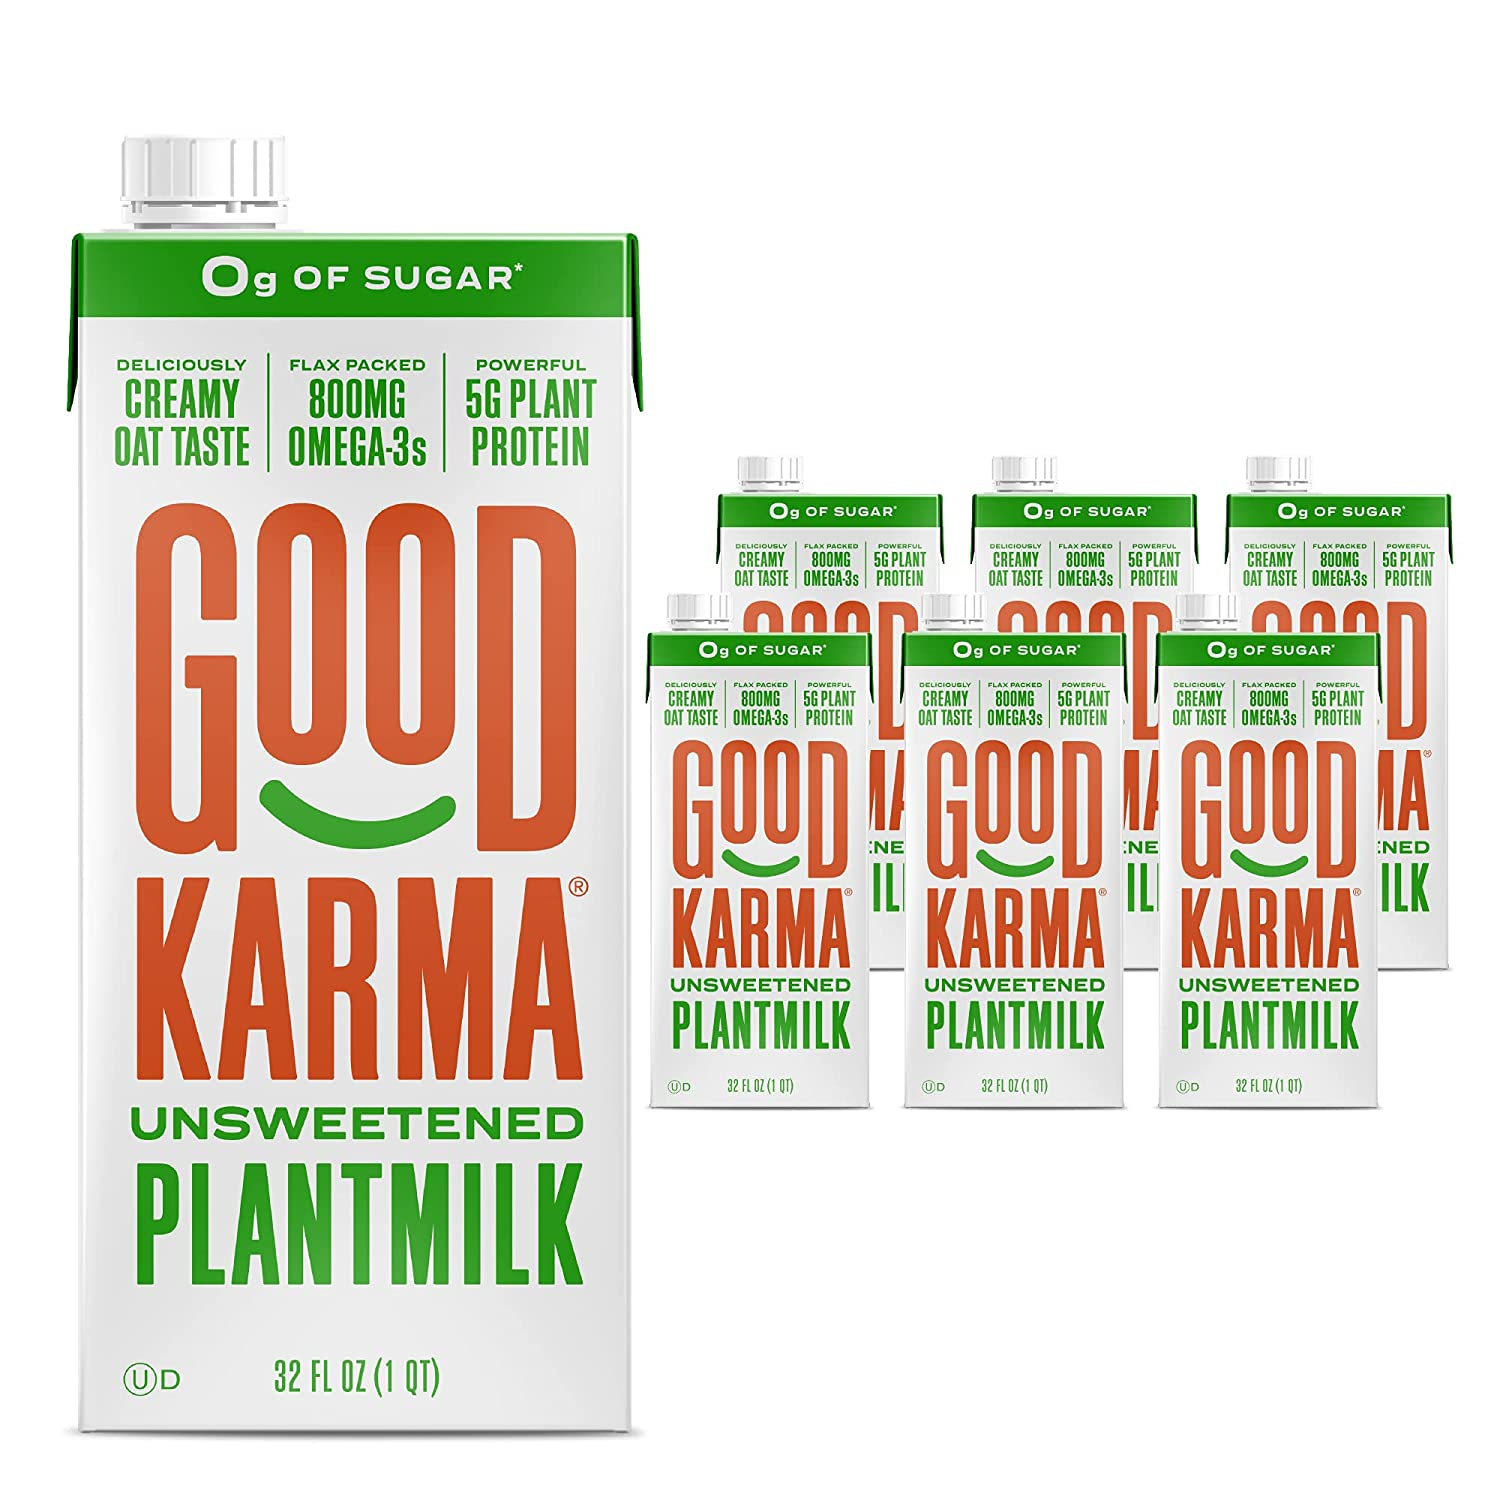 Good Karma Plantmilk Manufacturer direct delivery Unsweetened Made with Flax National products Oats Peas